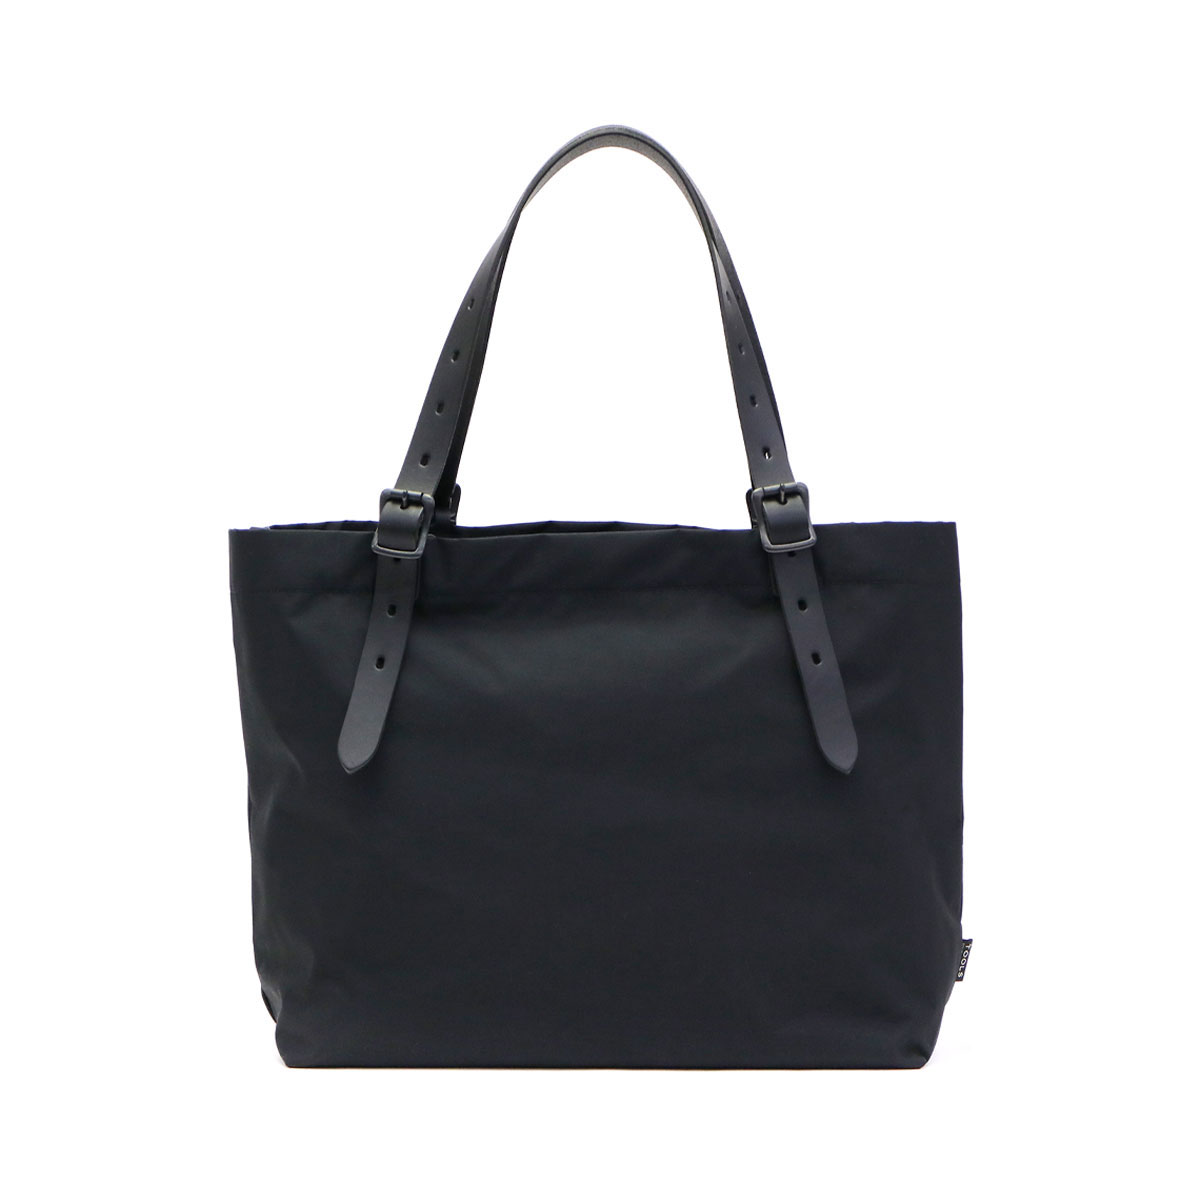 TOOLS ツールズ Daily tote bag S トートバッグ 49T208I